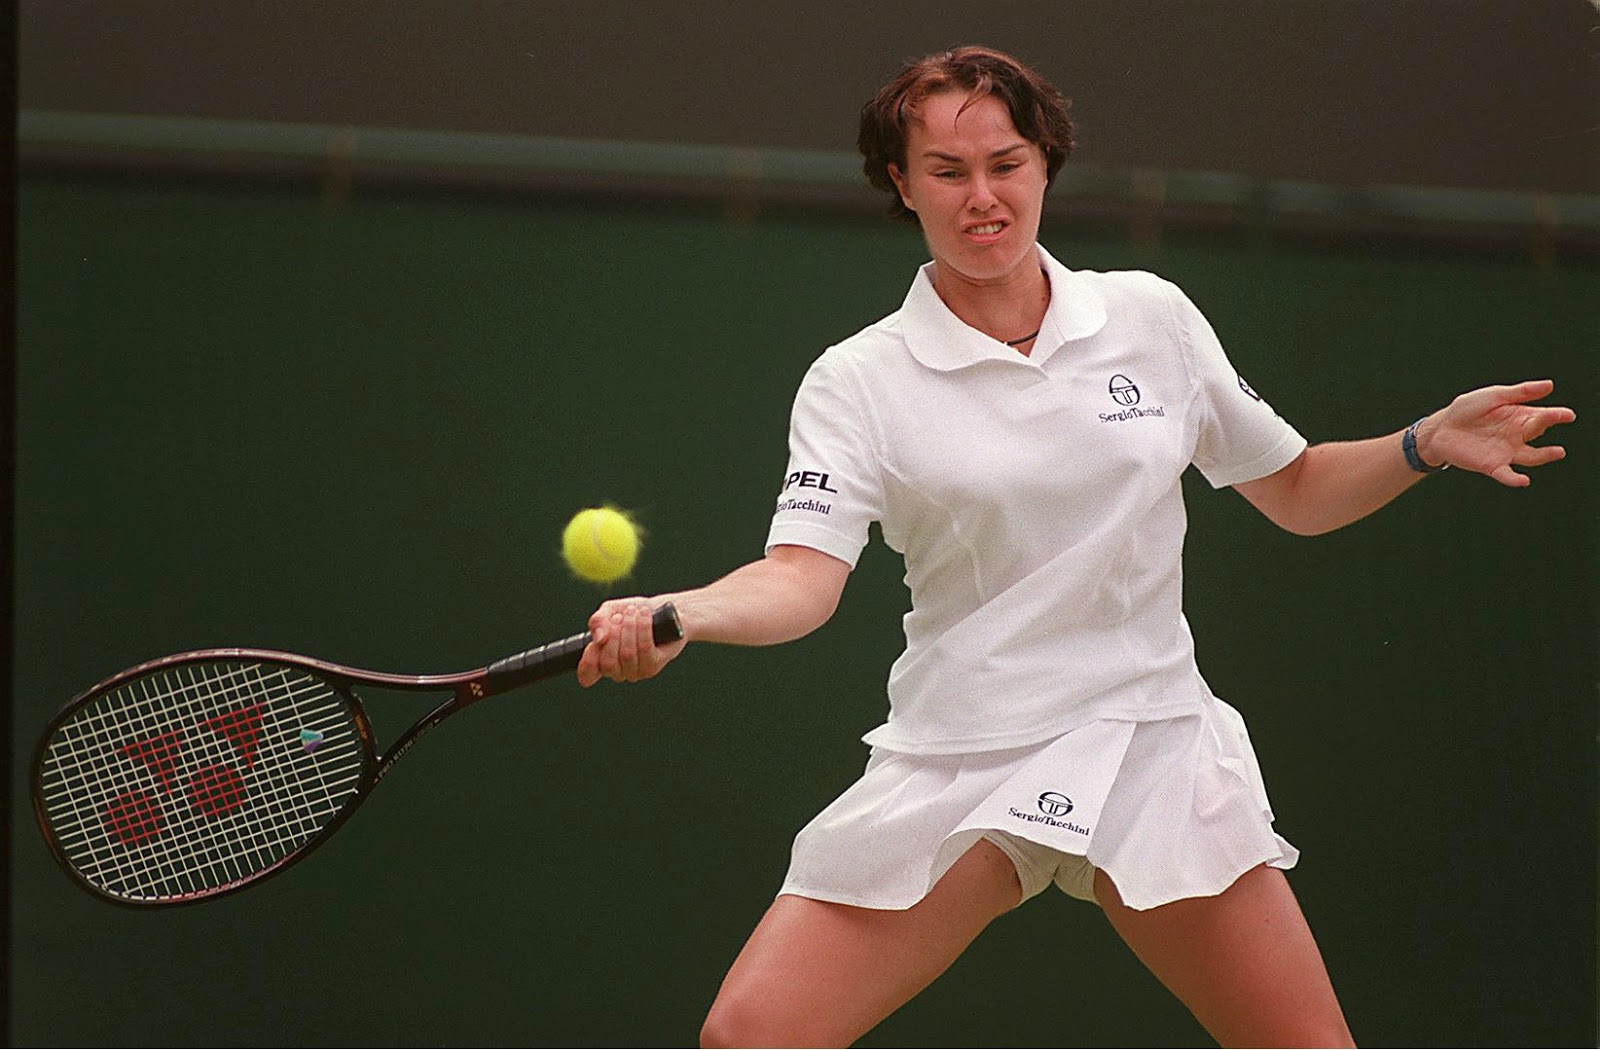 Martina hingis panties upskirts something